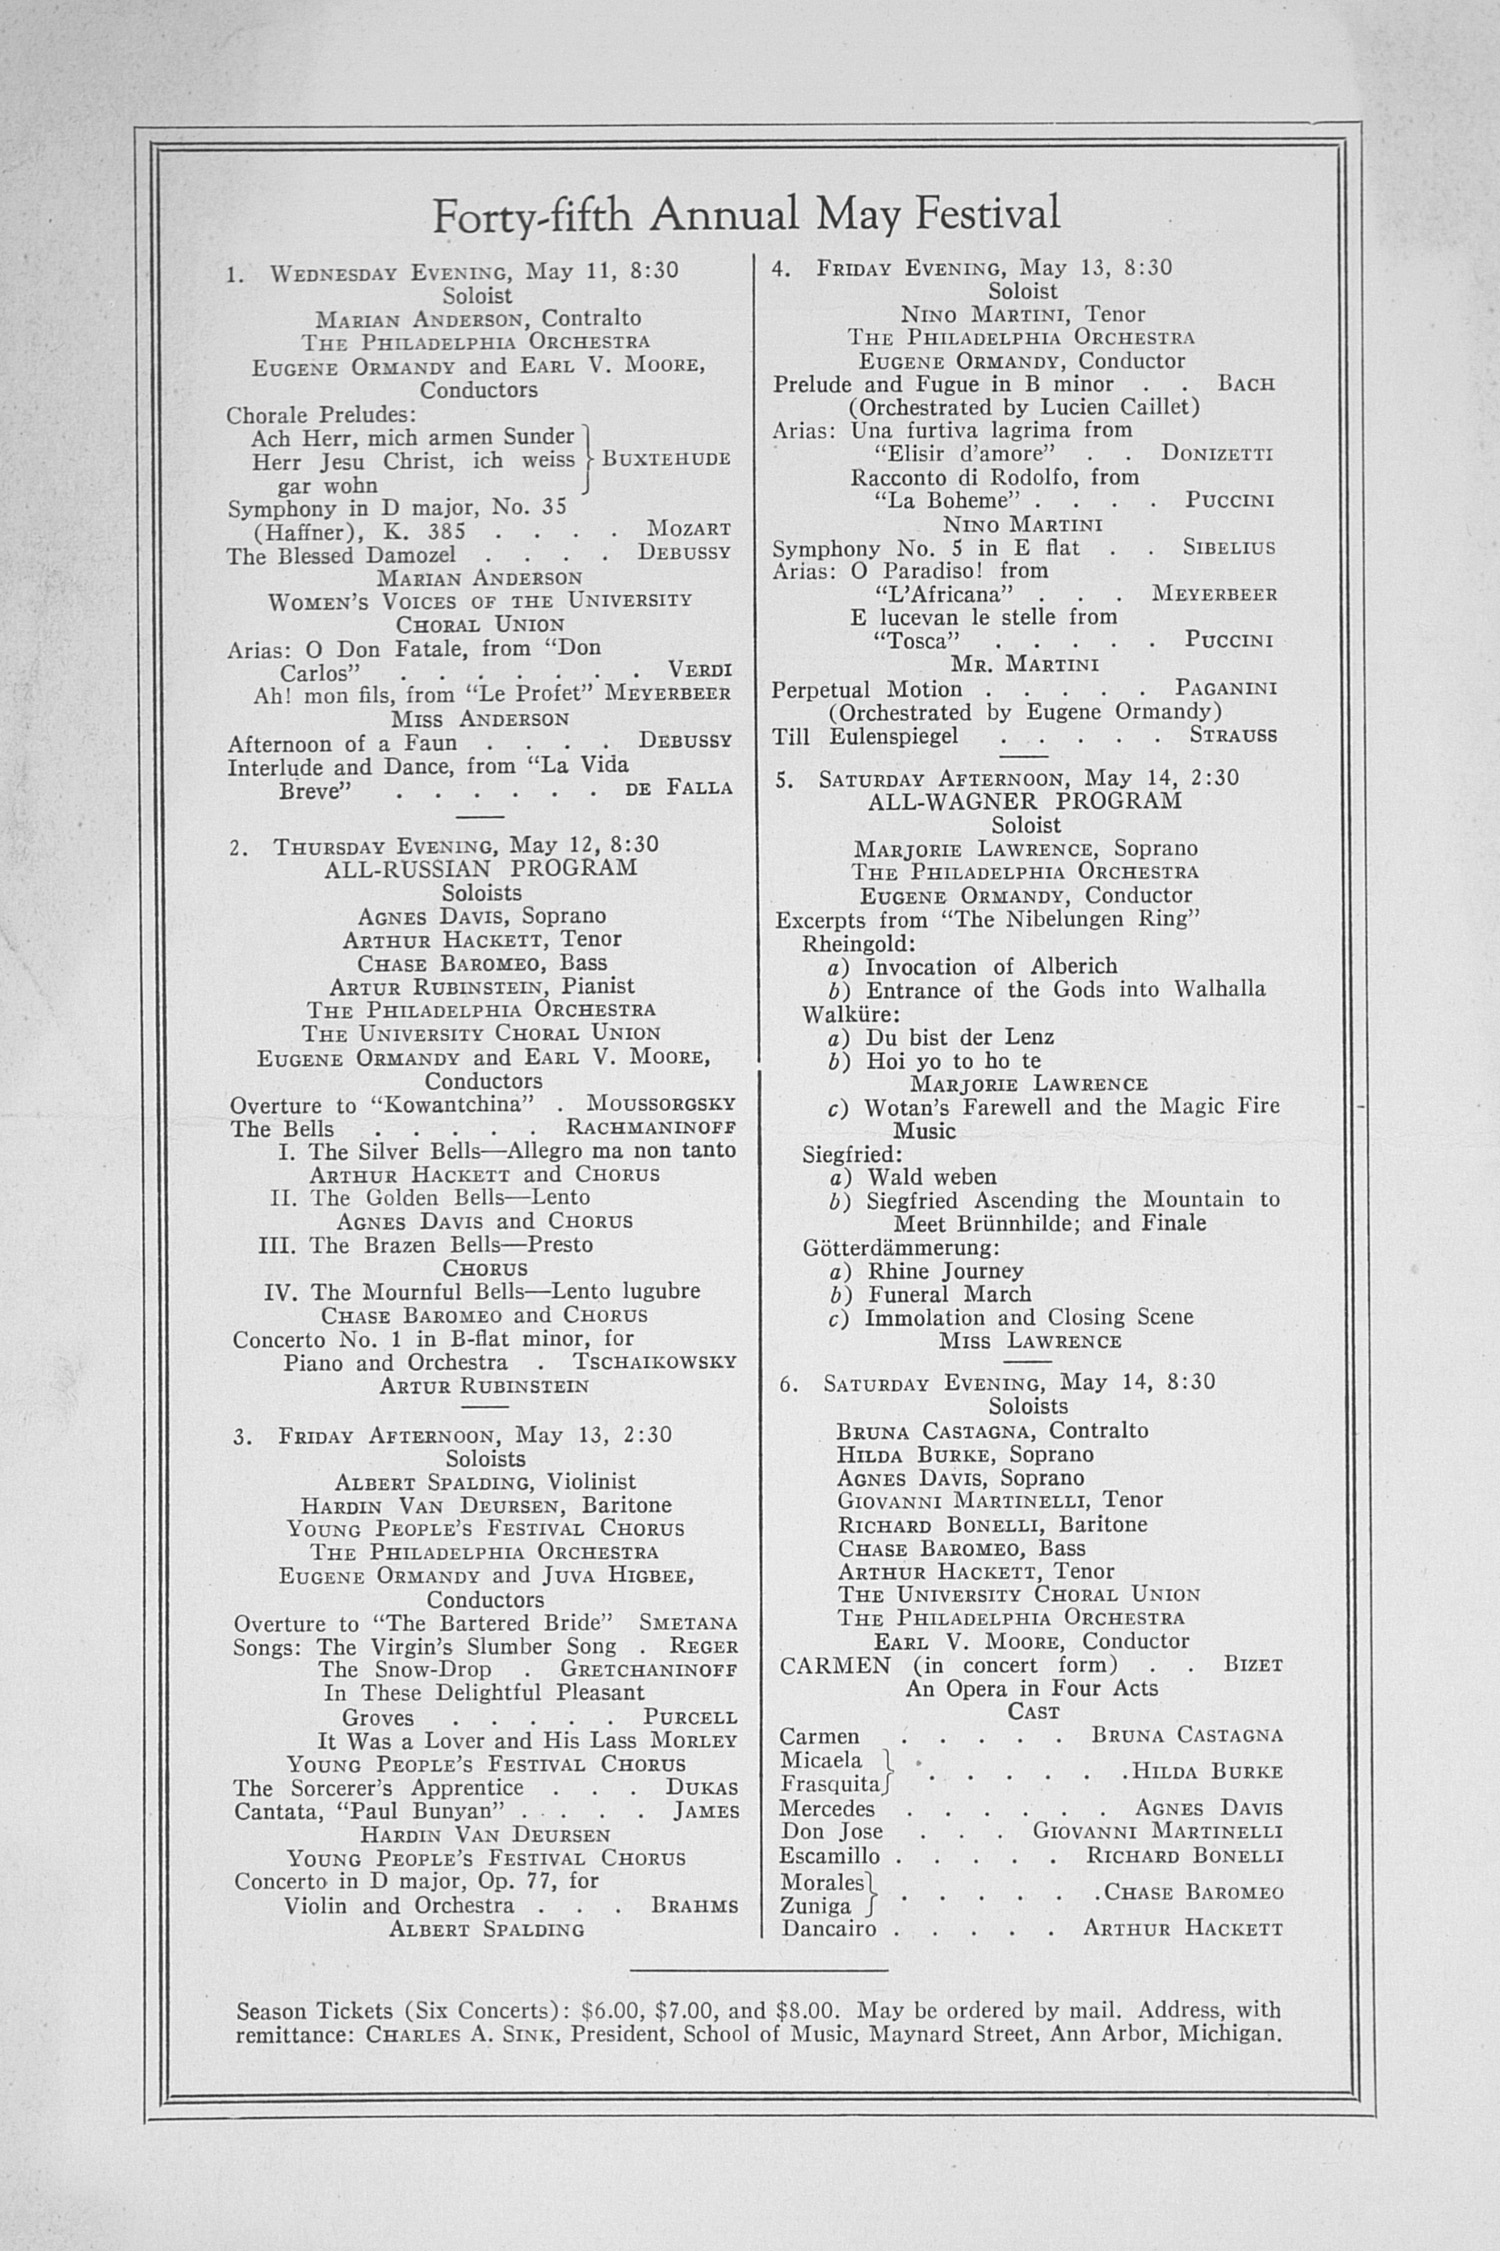 UMS Concert Program, March 1, 1938: Fifty-ninth Annual Choral Union Concert Series -- Georges Enesco image